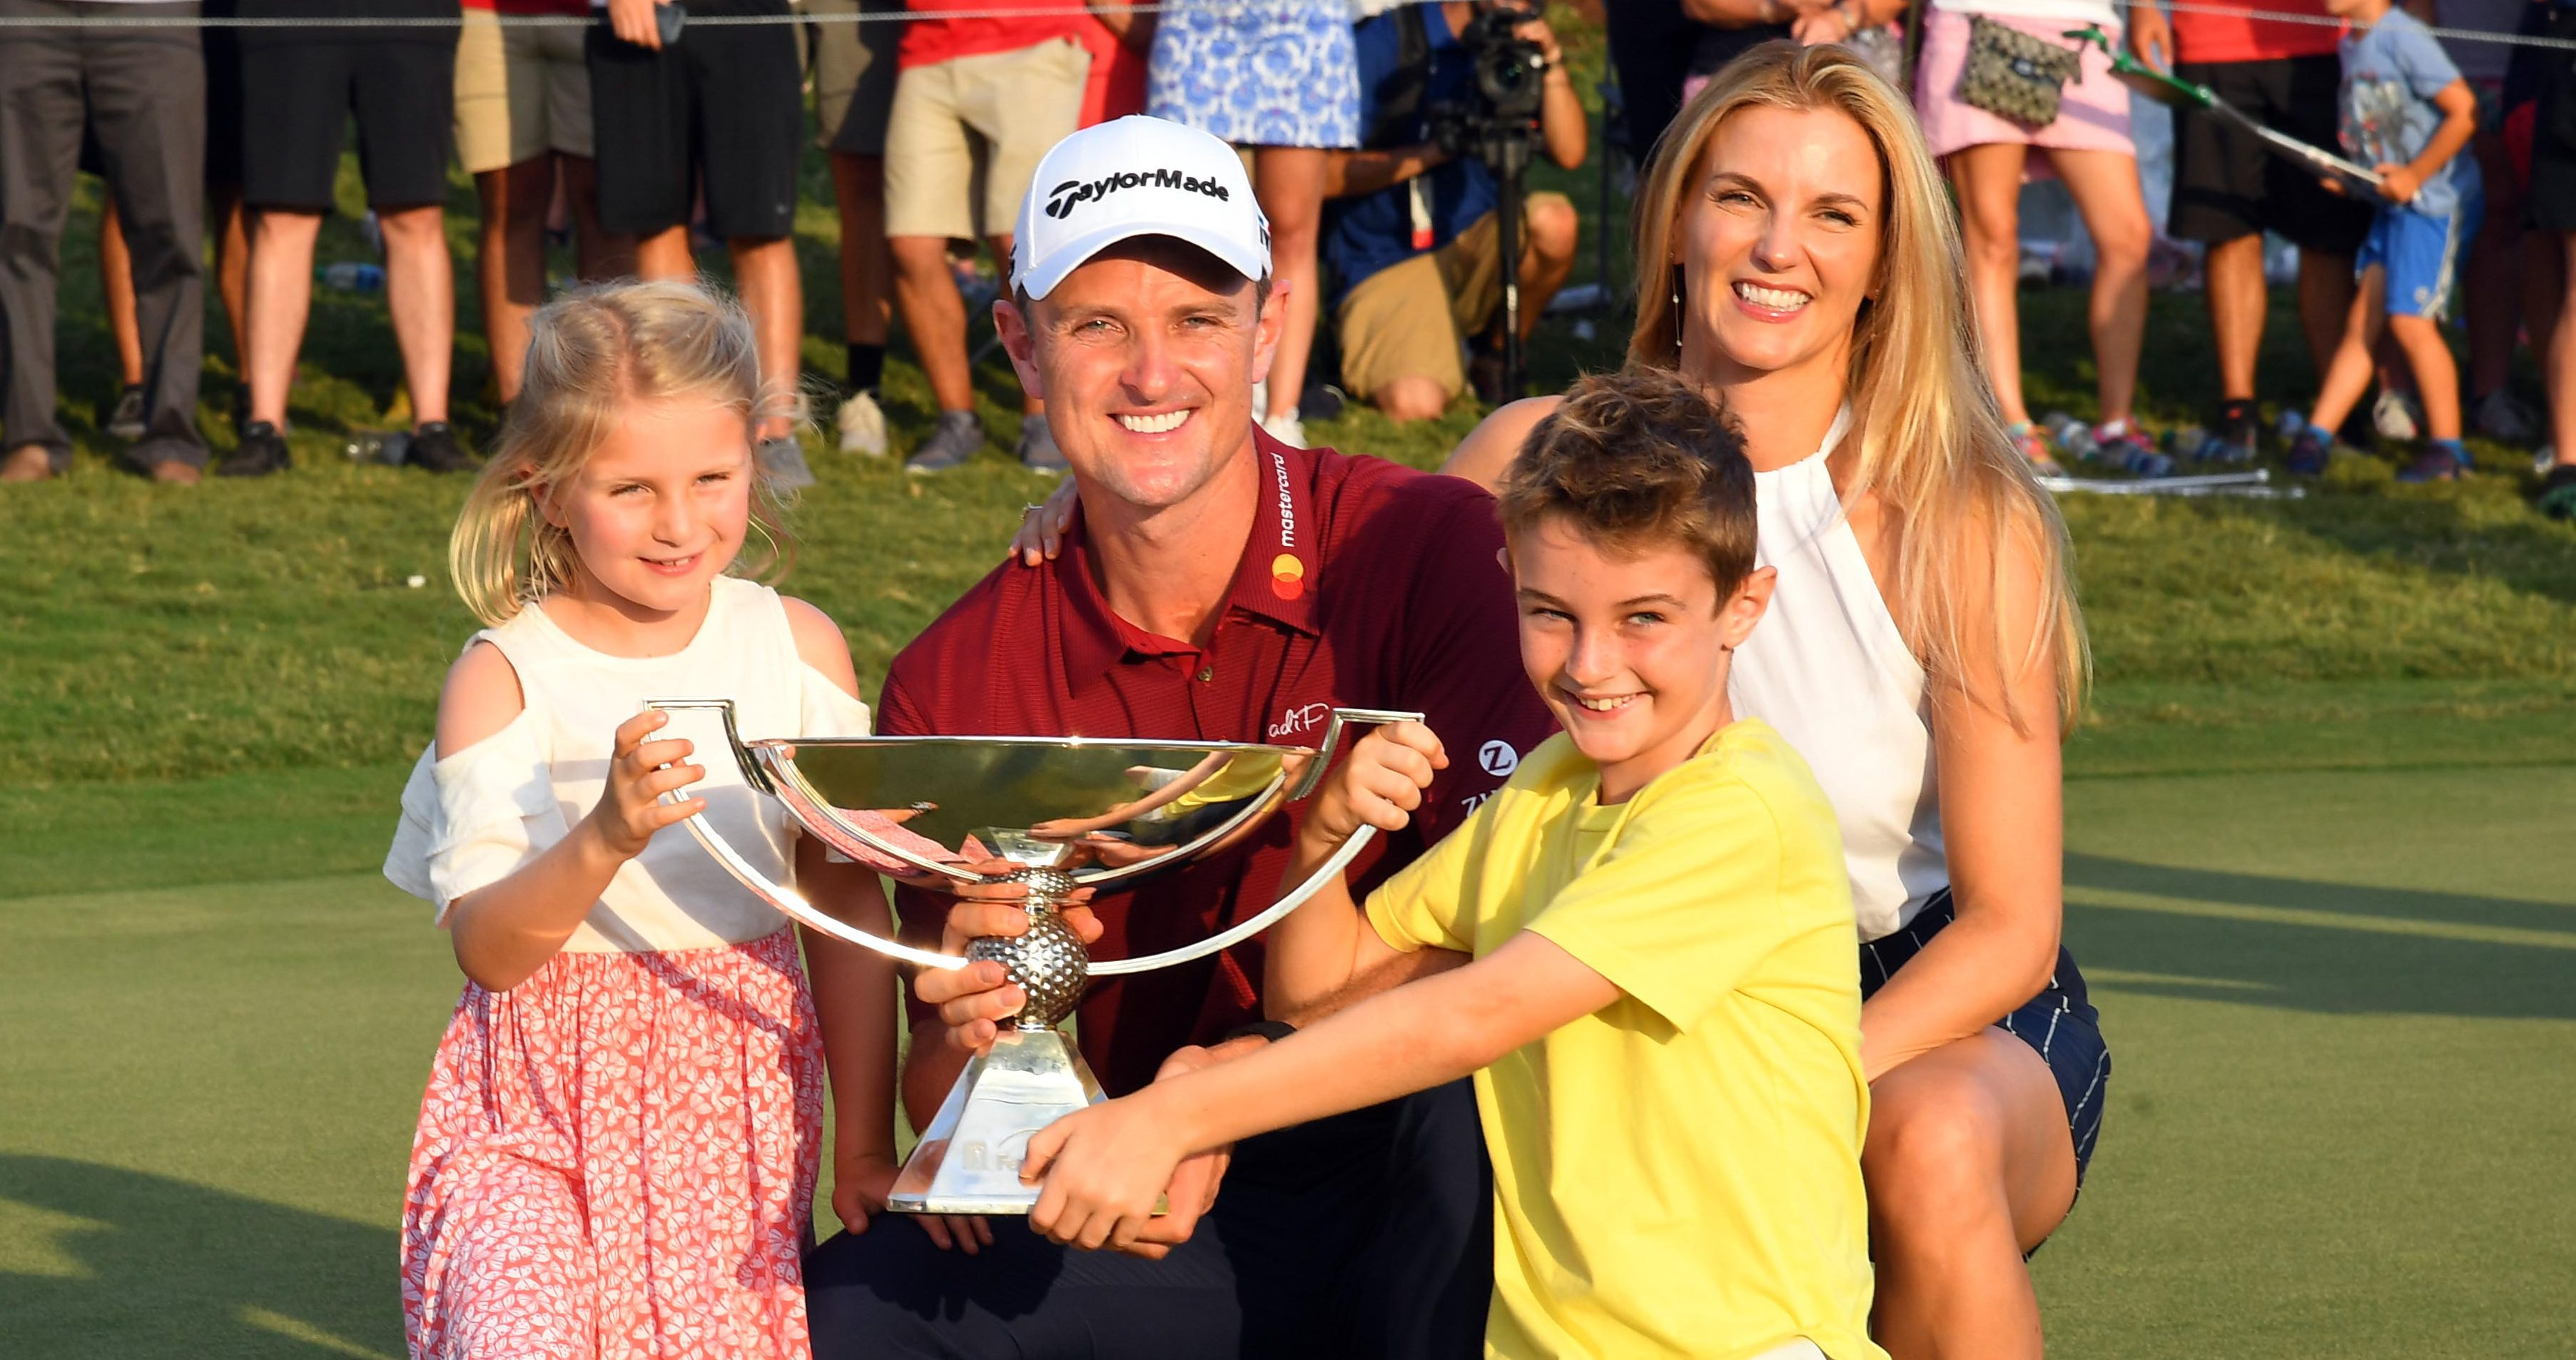 Sep 23, 2018; Atlanta, GA, USA; Justin Rose poses with his family with the FedEx Cup after the Tour Championship golf tournament at East Lake Golf Club. Mandatory Credit: Christopher Hanewinckel-USA TODAY Sports